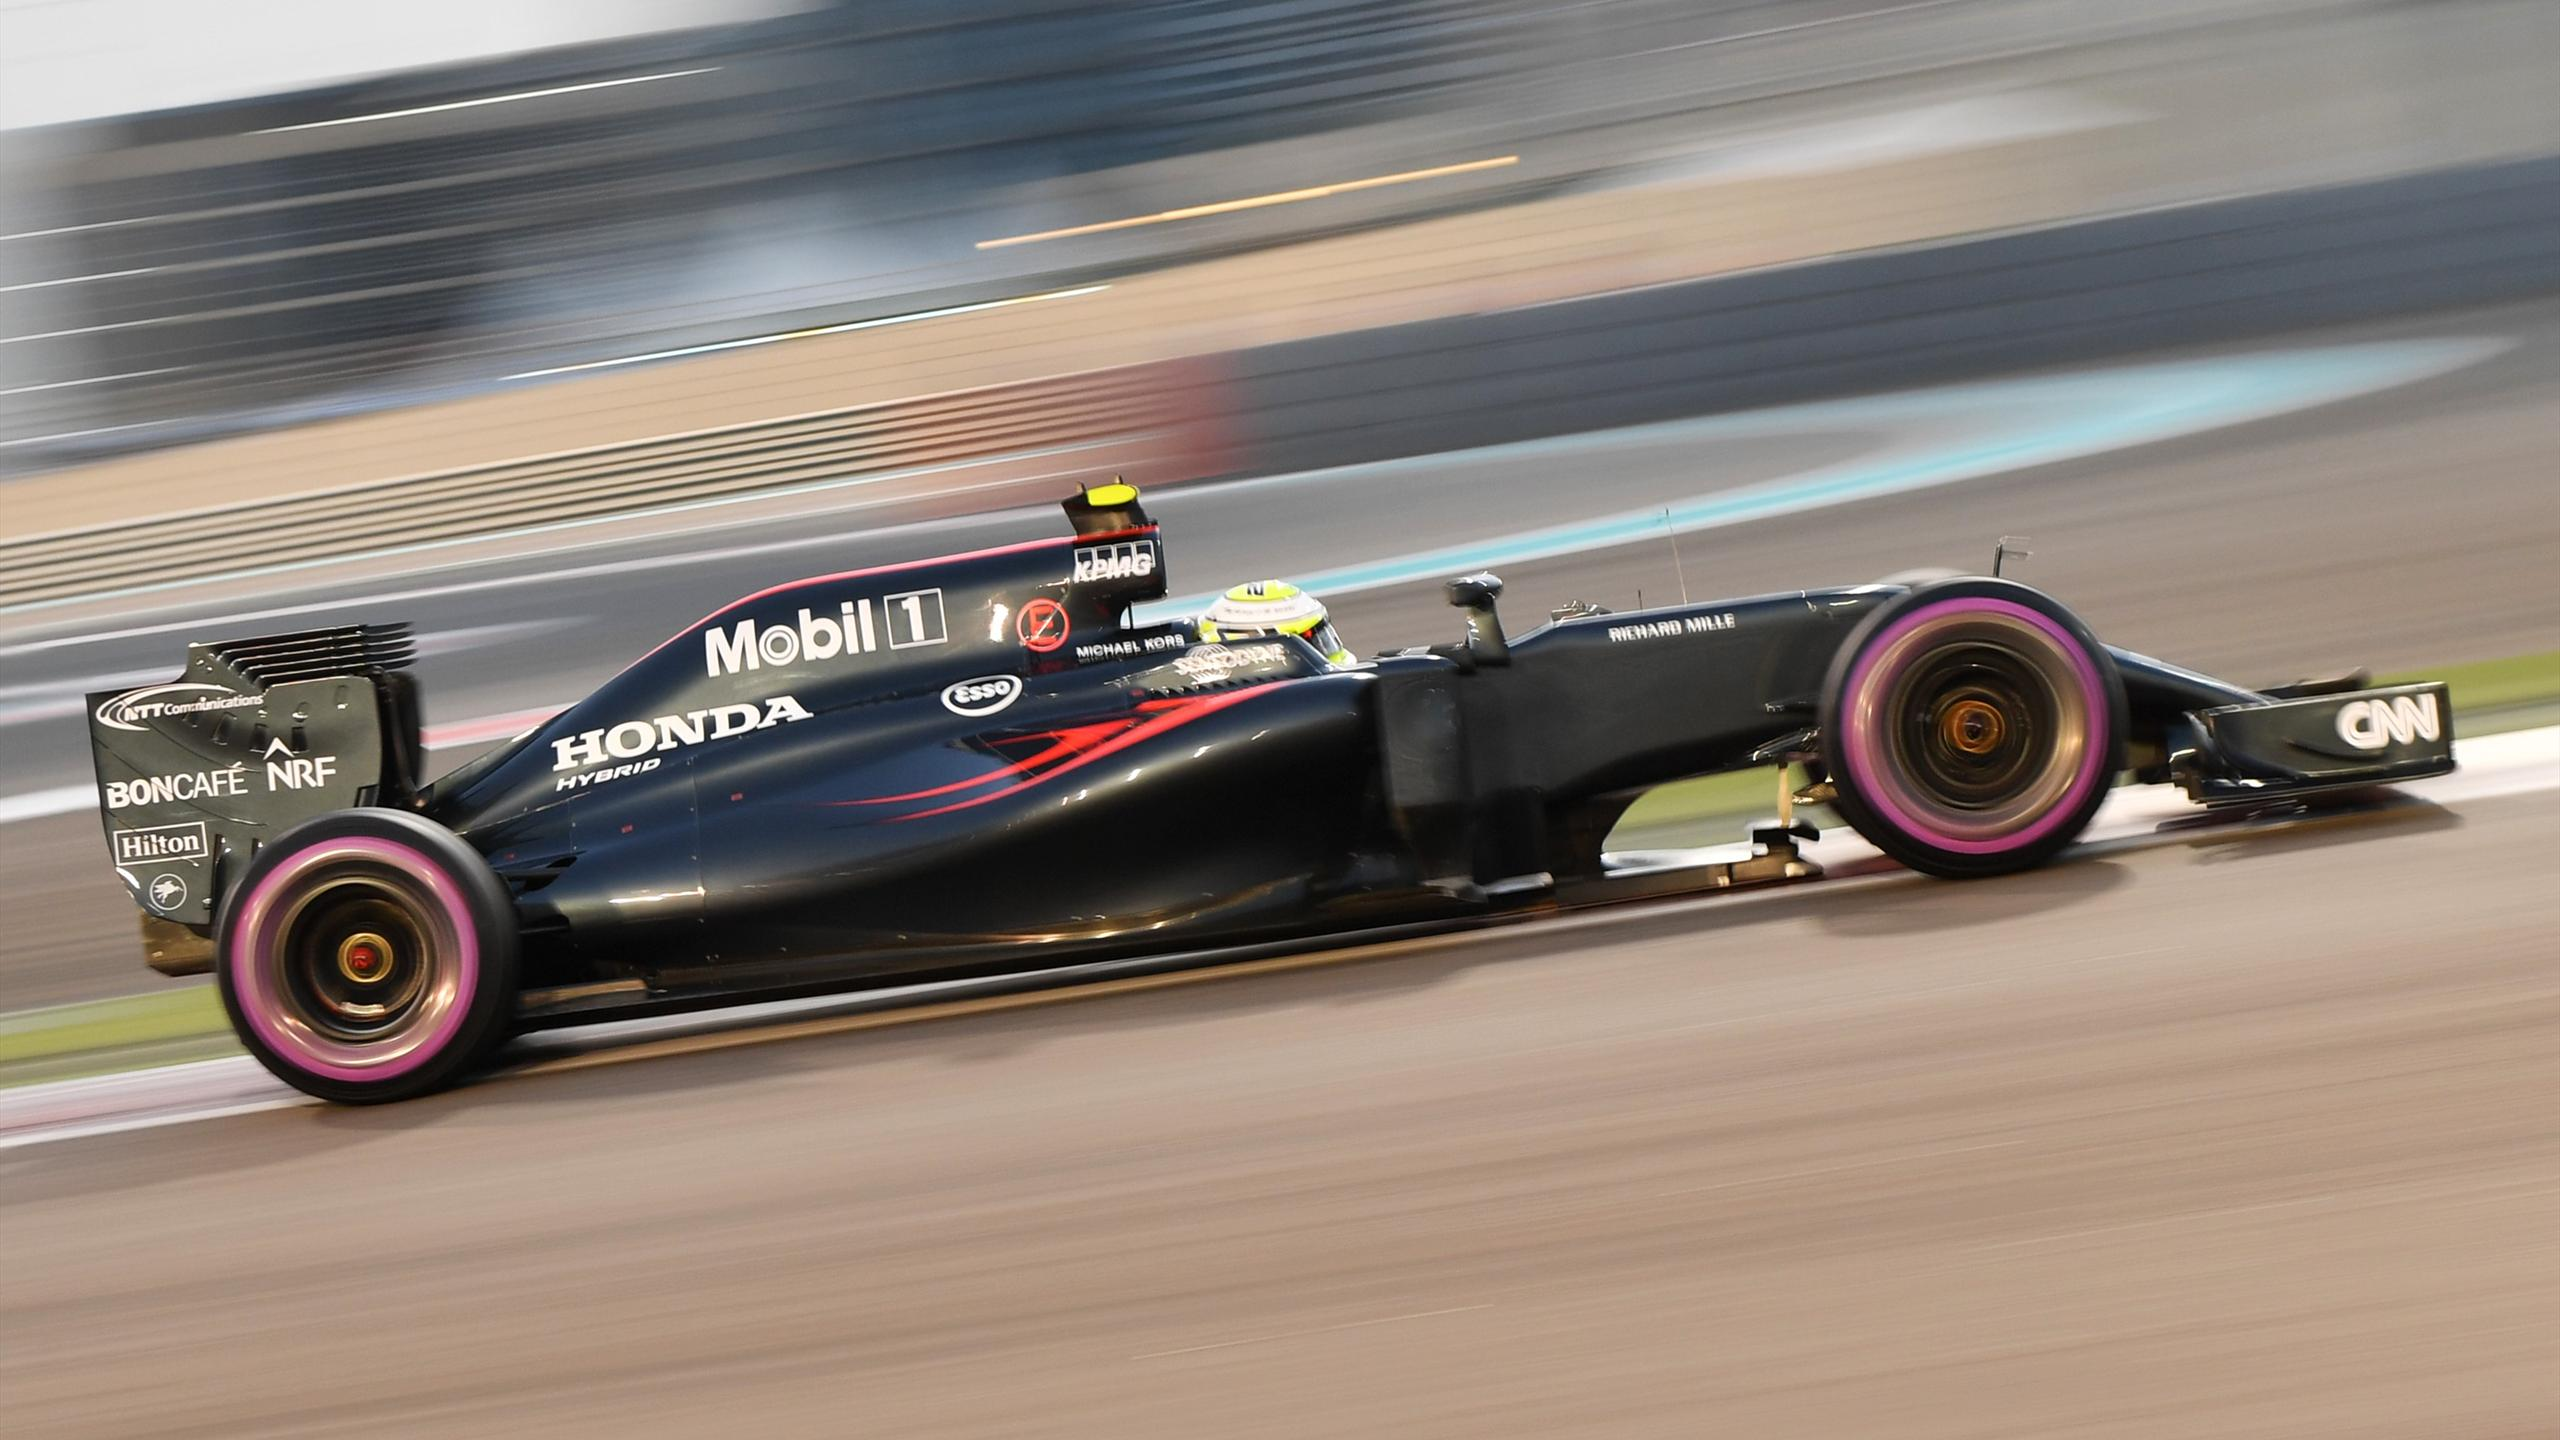 McLaren Honda's British driver Jenson Button steers his car during the qualifying session as part of the Abu Dhabi Formula One Grand Prix at the Yas Marina circuit on November 26, 2016.